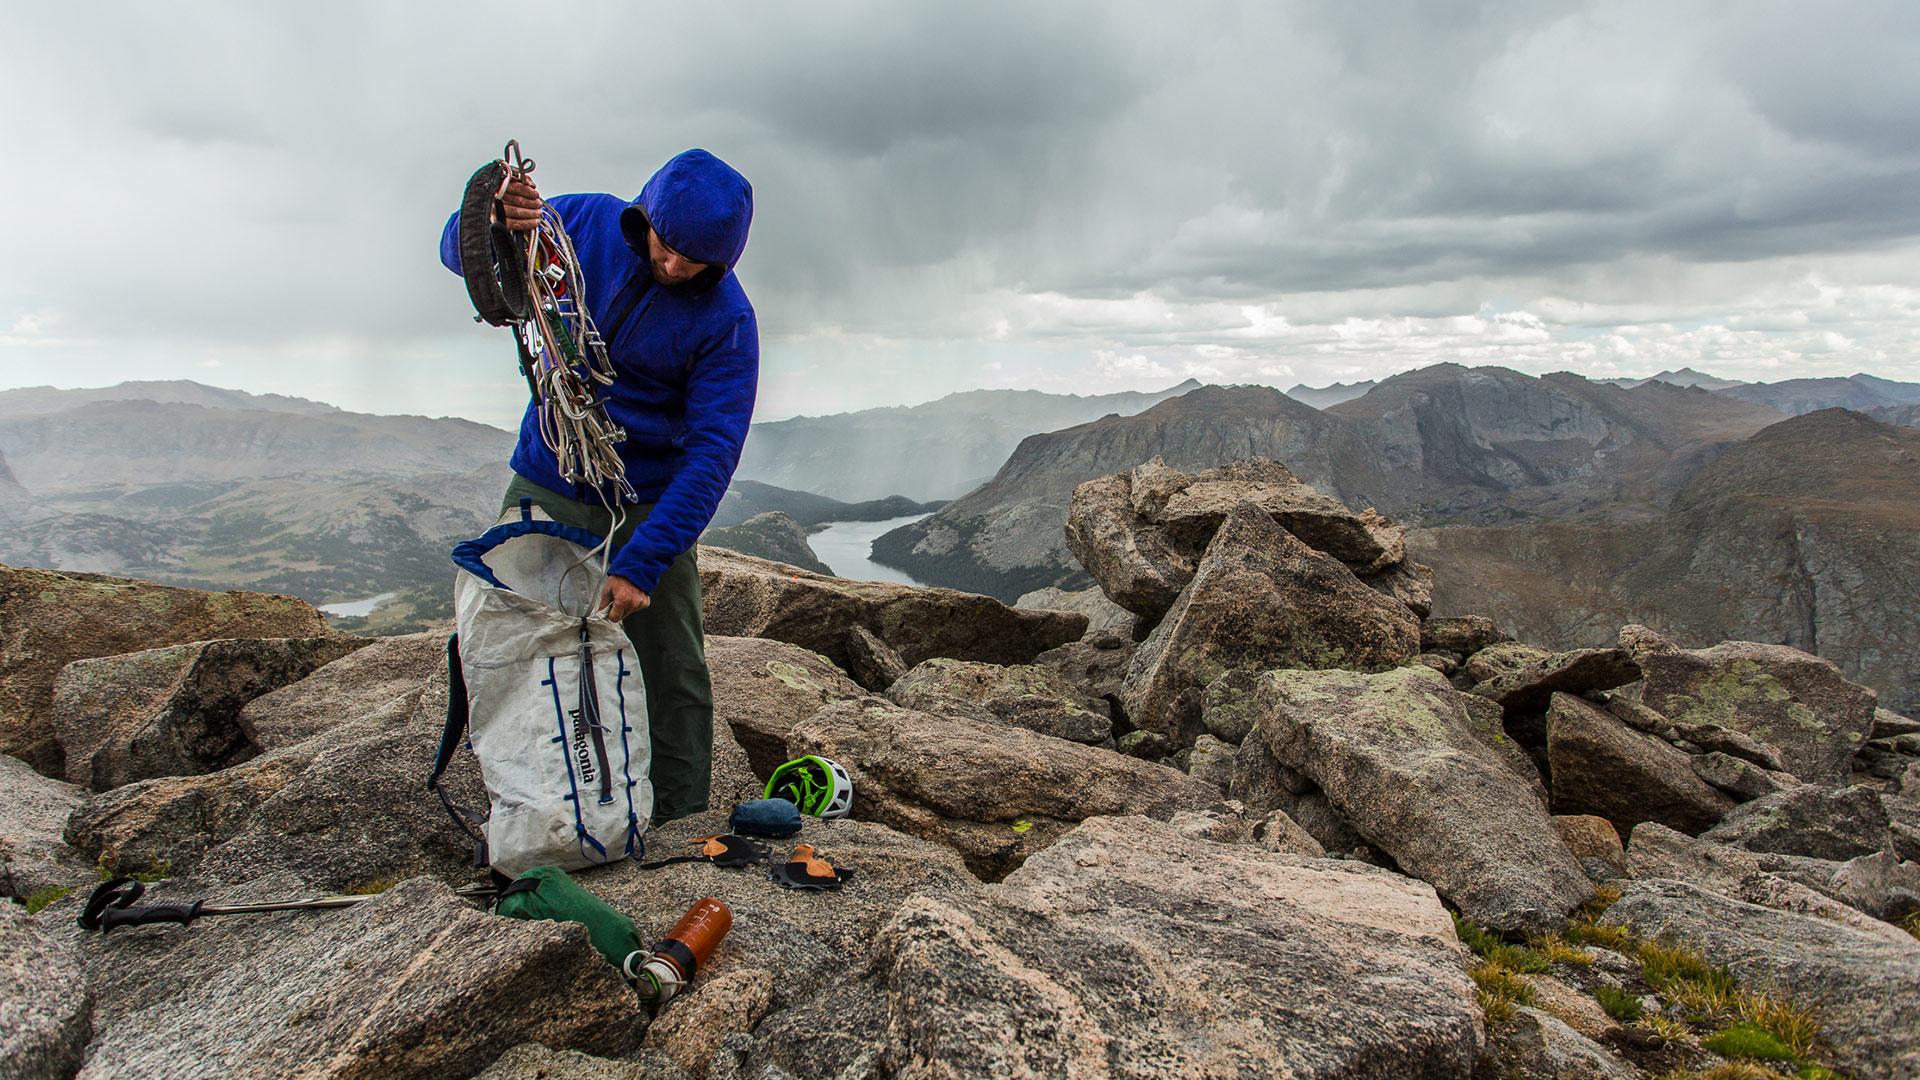 The pack before the storm: Josh Wharton makes a hasty exit. Wind River Range, Wyoming. JOHN DICKEY